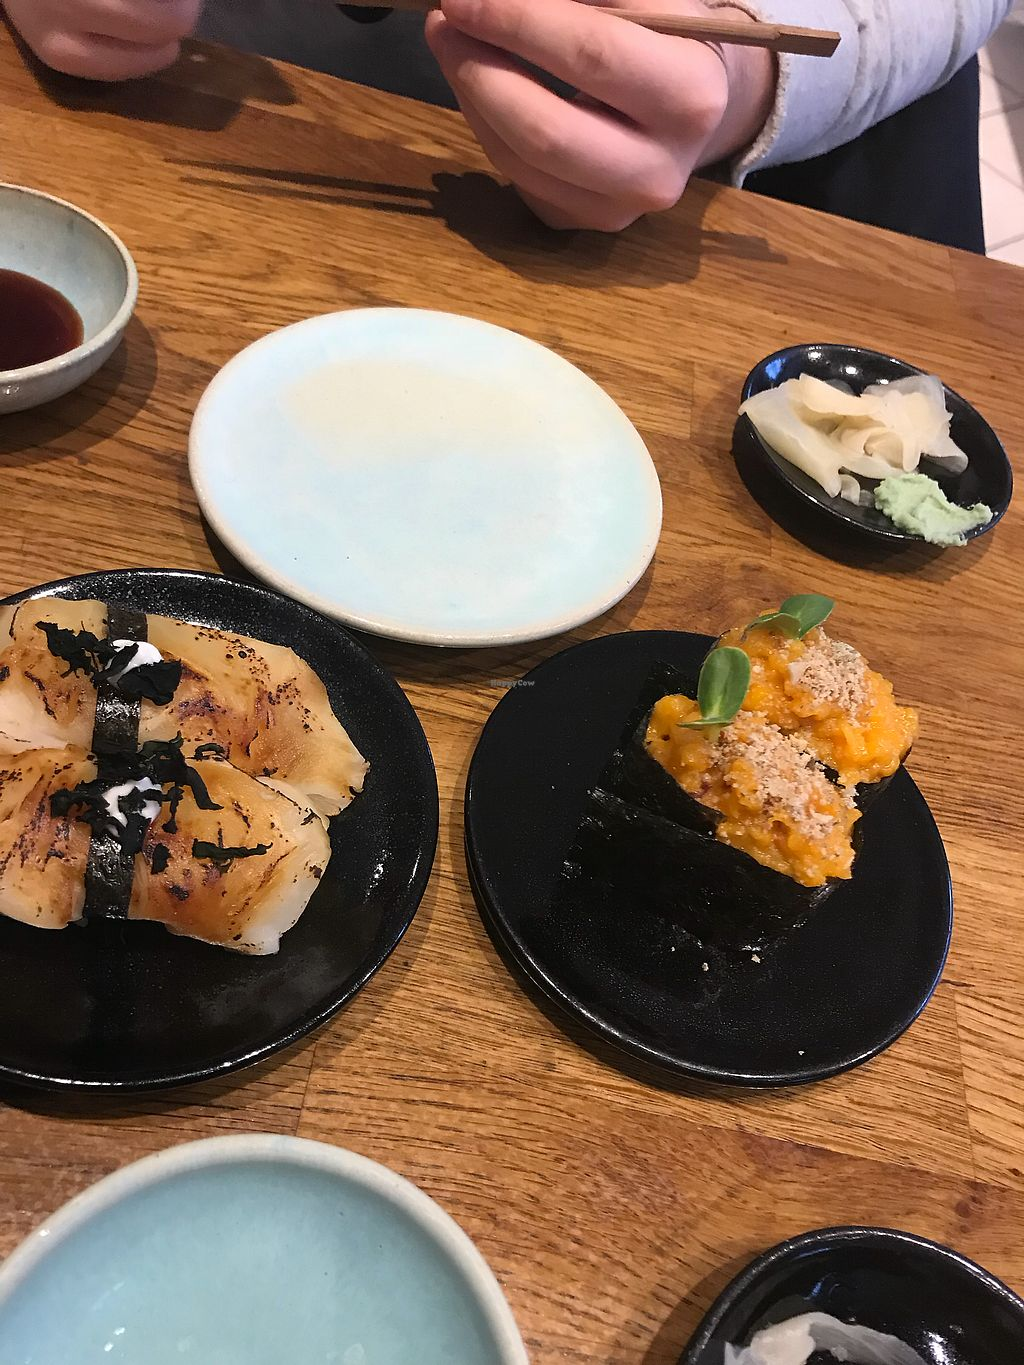 """Photo of Youmiko Vegan Sushi  by <a href=""""/members/profile/ellengdx"""">ellengdx</a> <br/>On the left: teriyaki celeriac, right: pumpkin and onion mash. Incredibly tasty and clever combinations! <br/> January 8, 2018  - <a href='/contact/abuse/image/68693/344436'>Report</a>"""